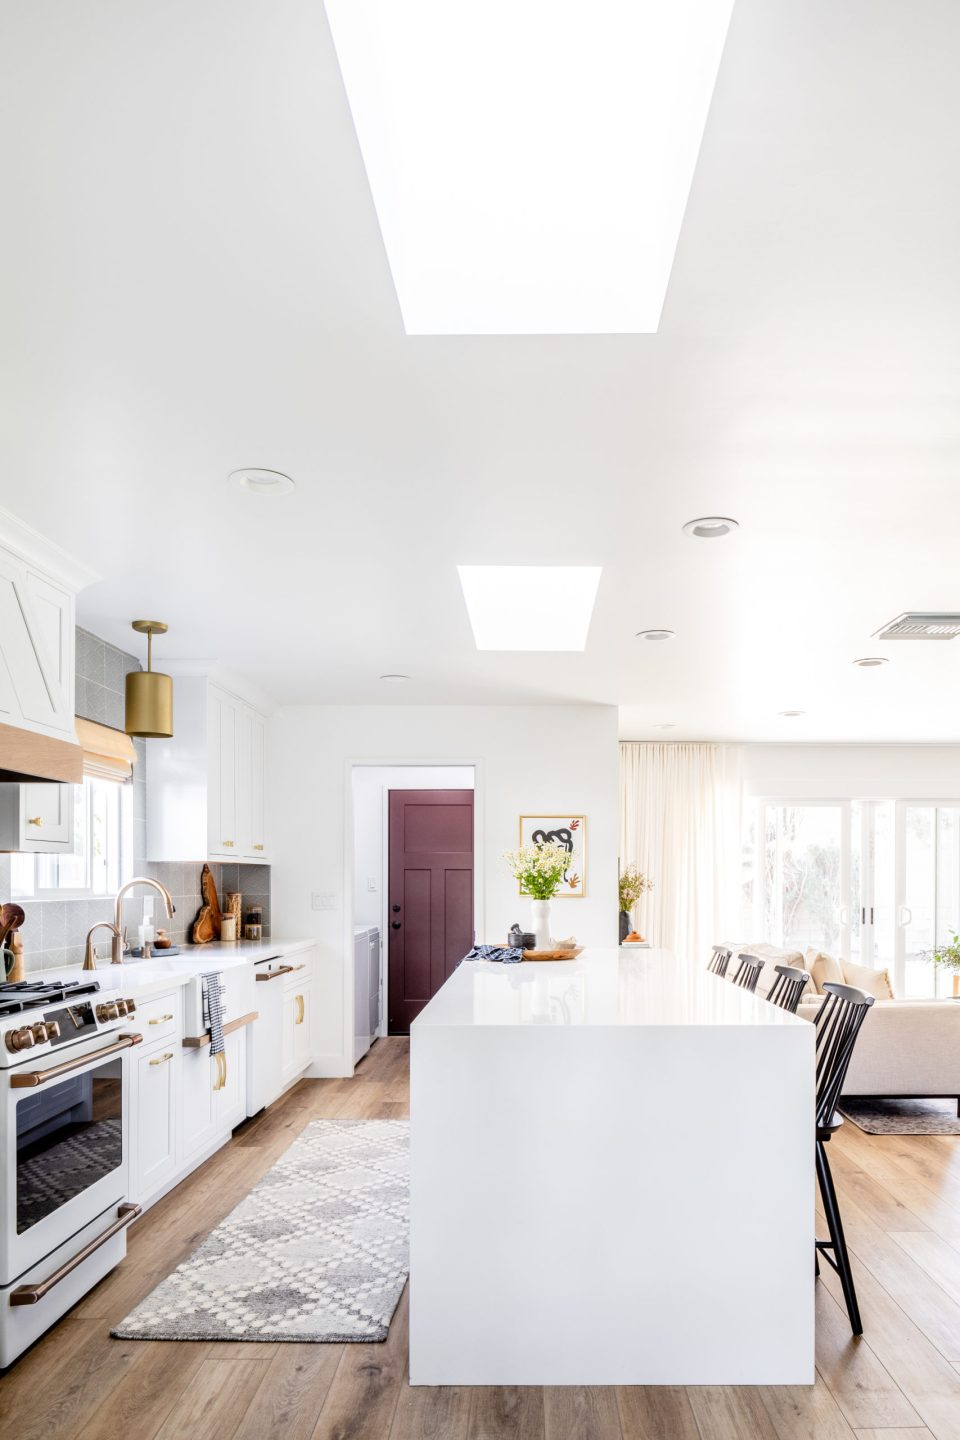 A view into the kitchen, with its sunny skylights and waterfall island